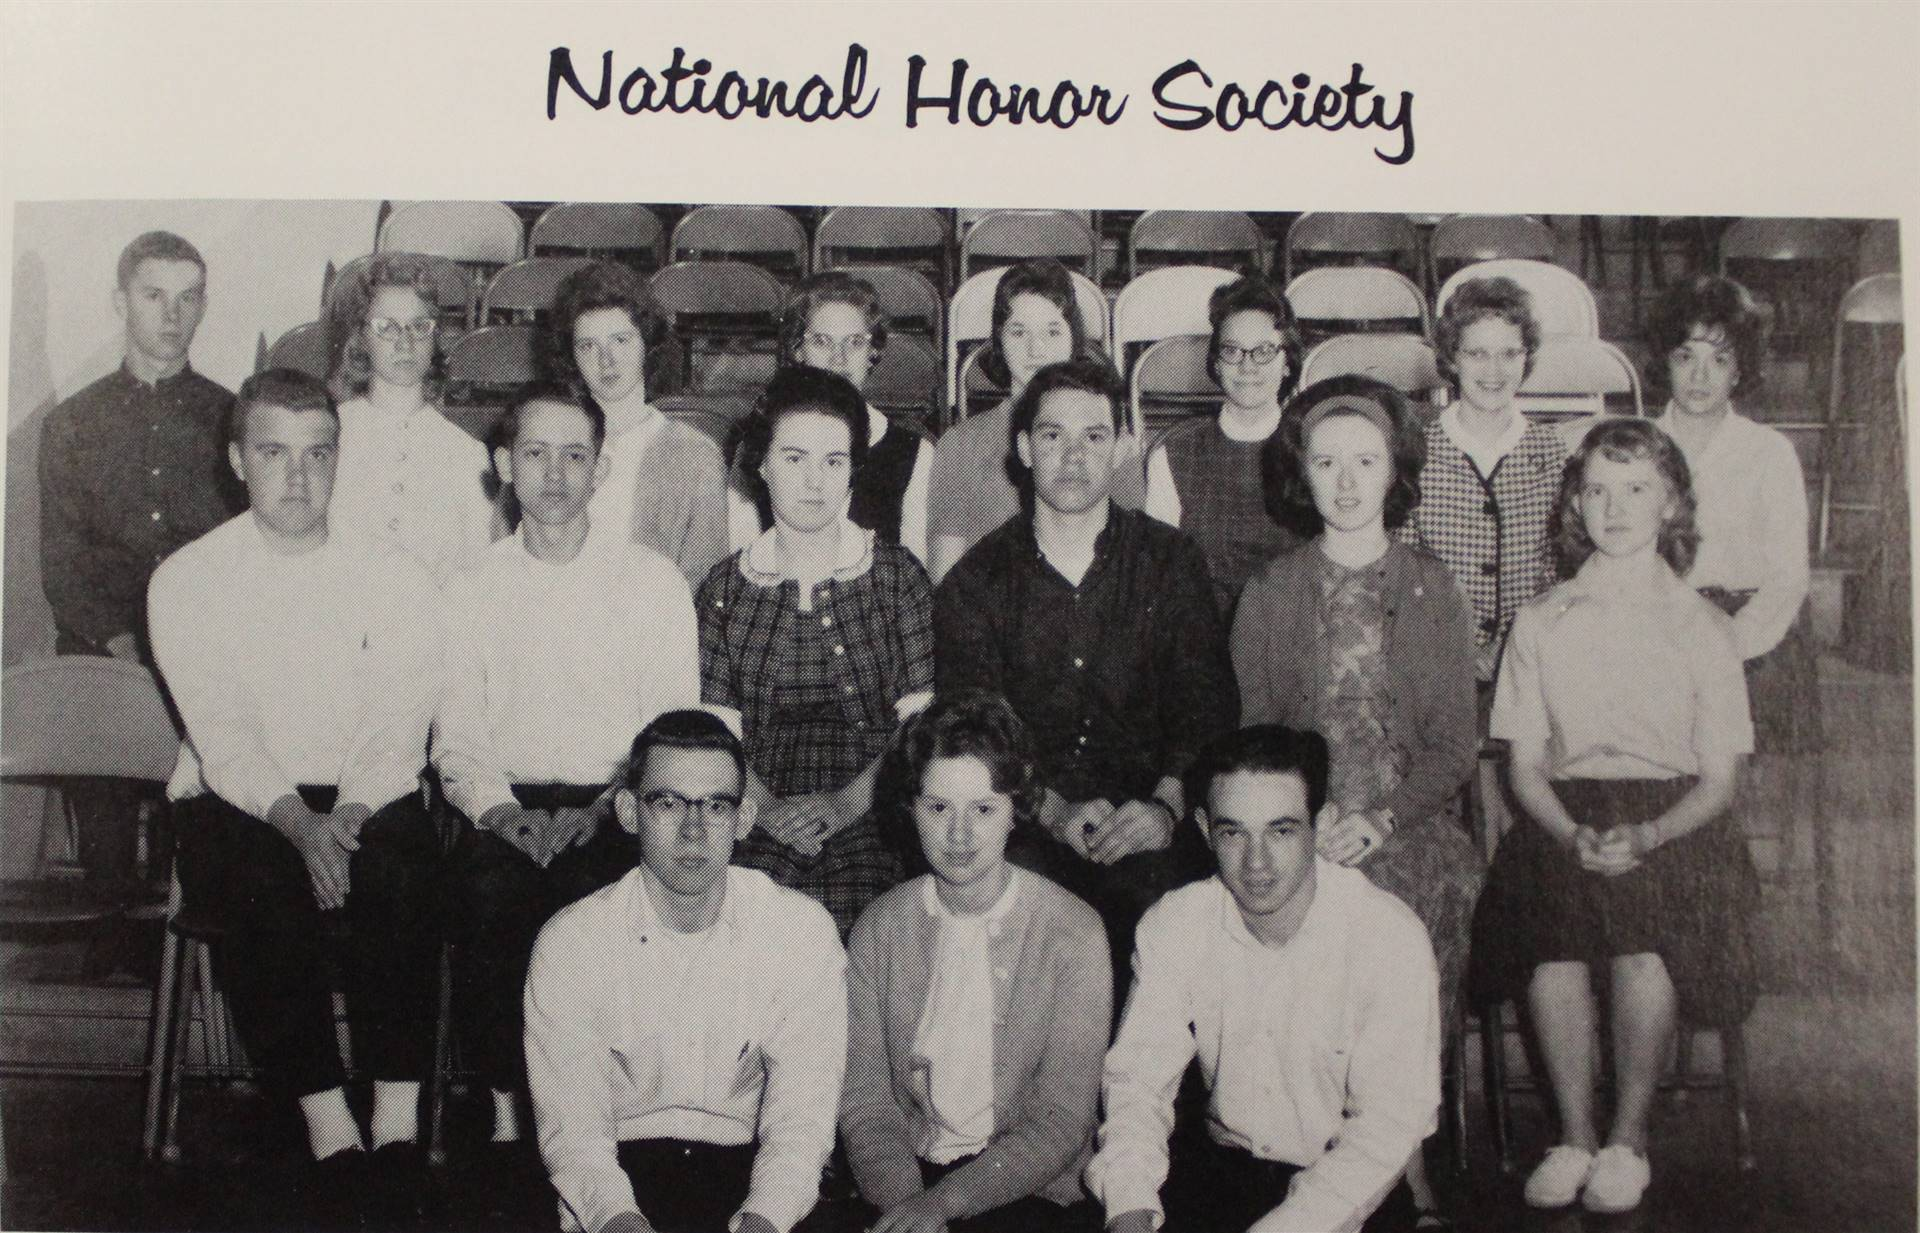 1964 National Honor Society